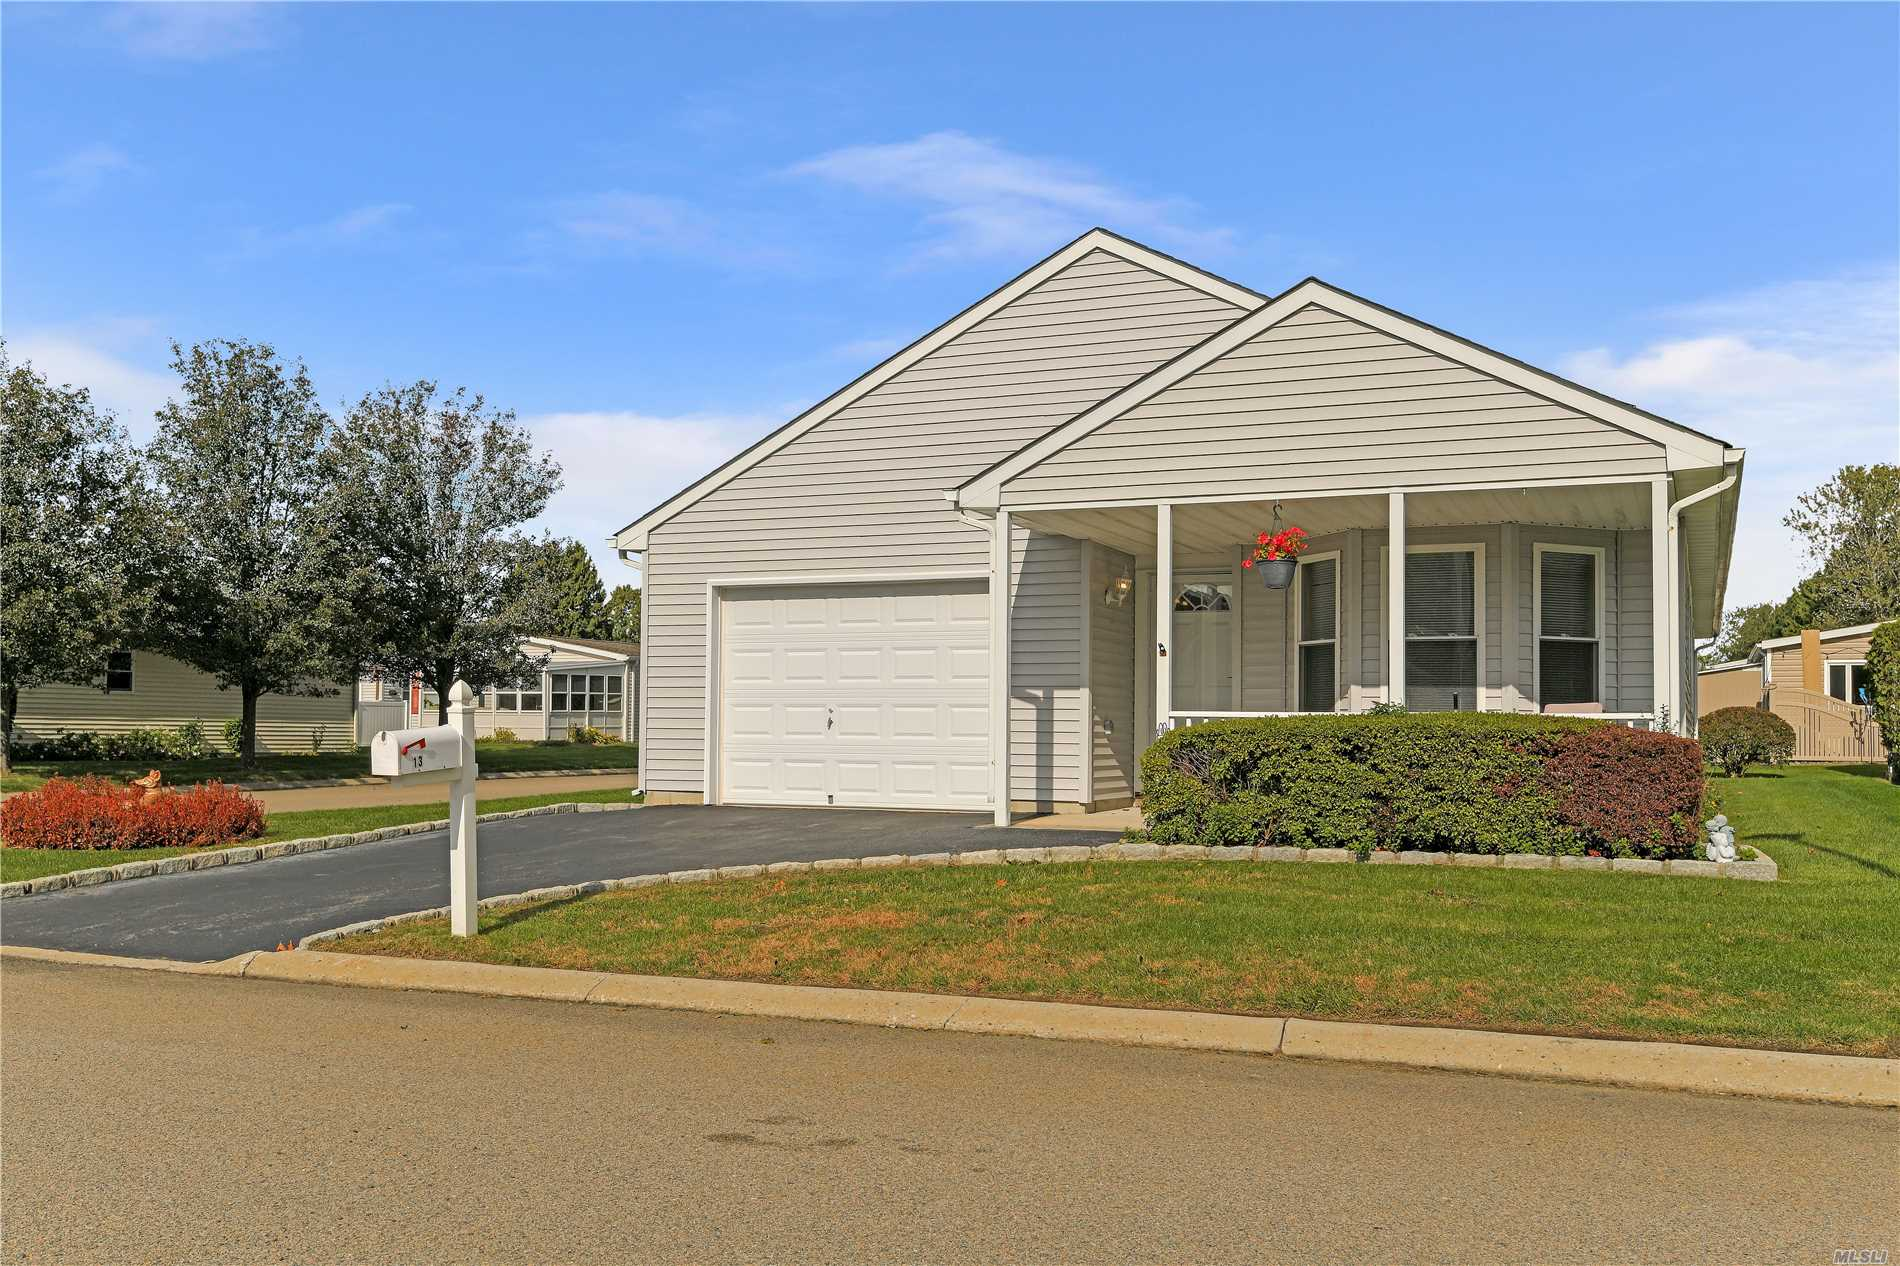 Property for sale at 13 Strawberry Patch Ct, Manorville,  NY 11949